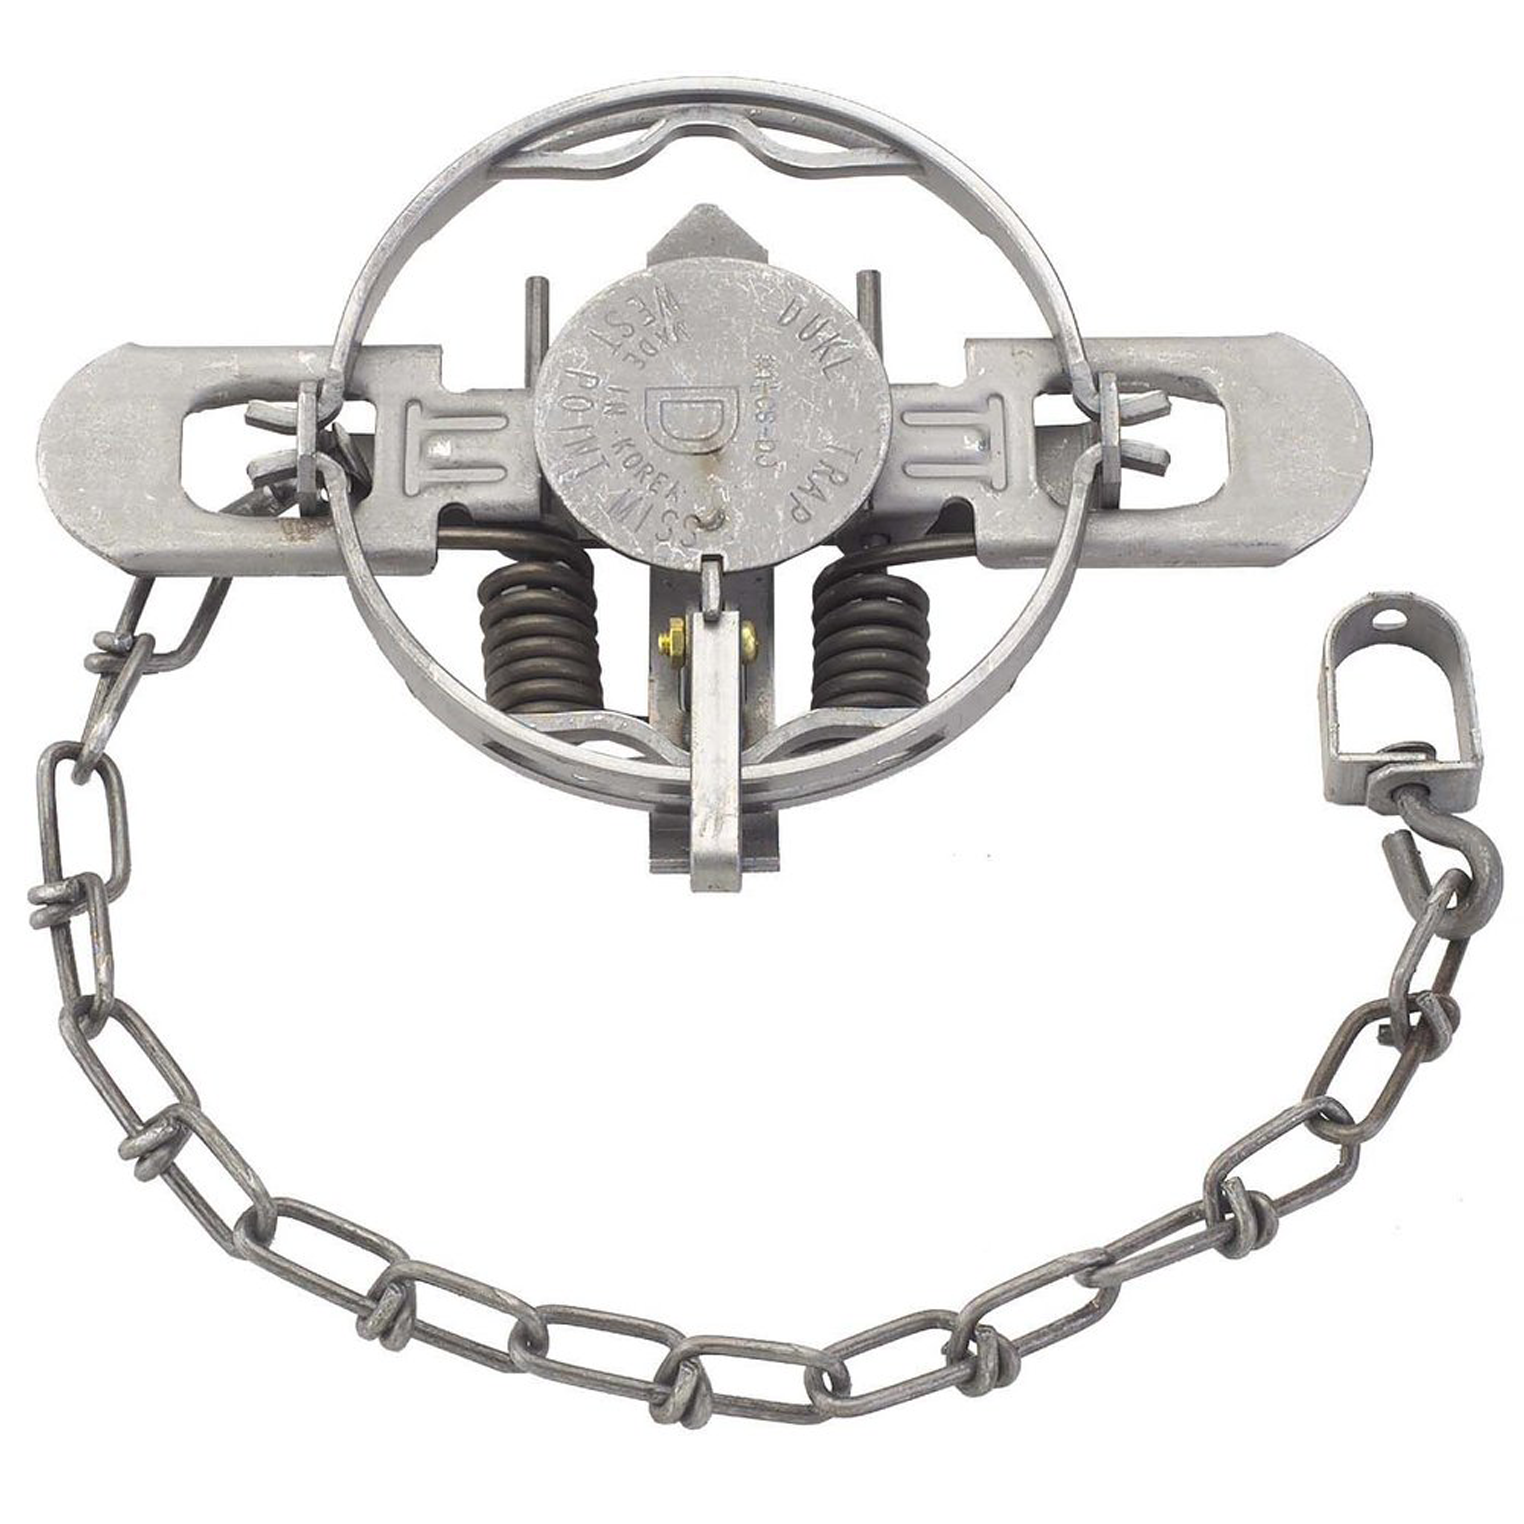 Duke #1 1/2 Coil Spring Double Jaw Trap